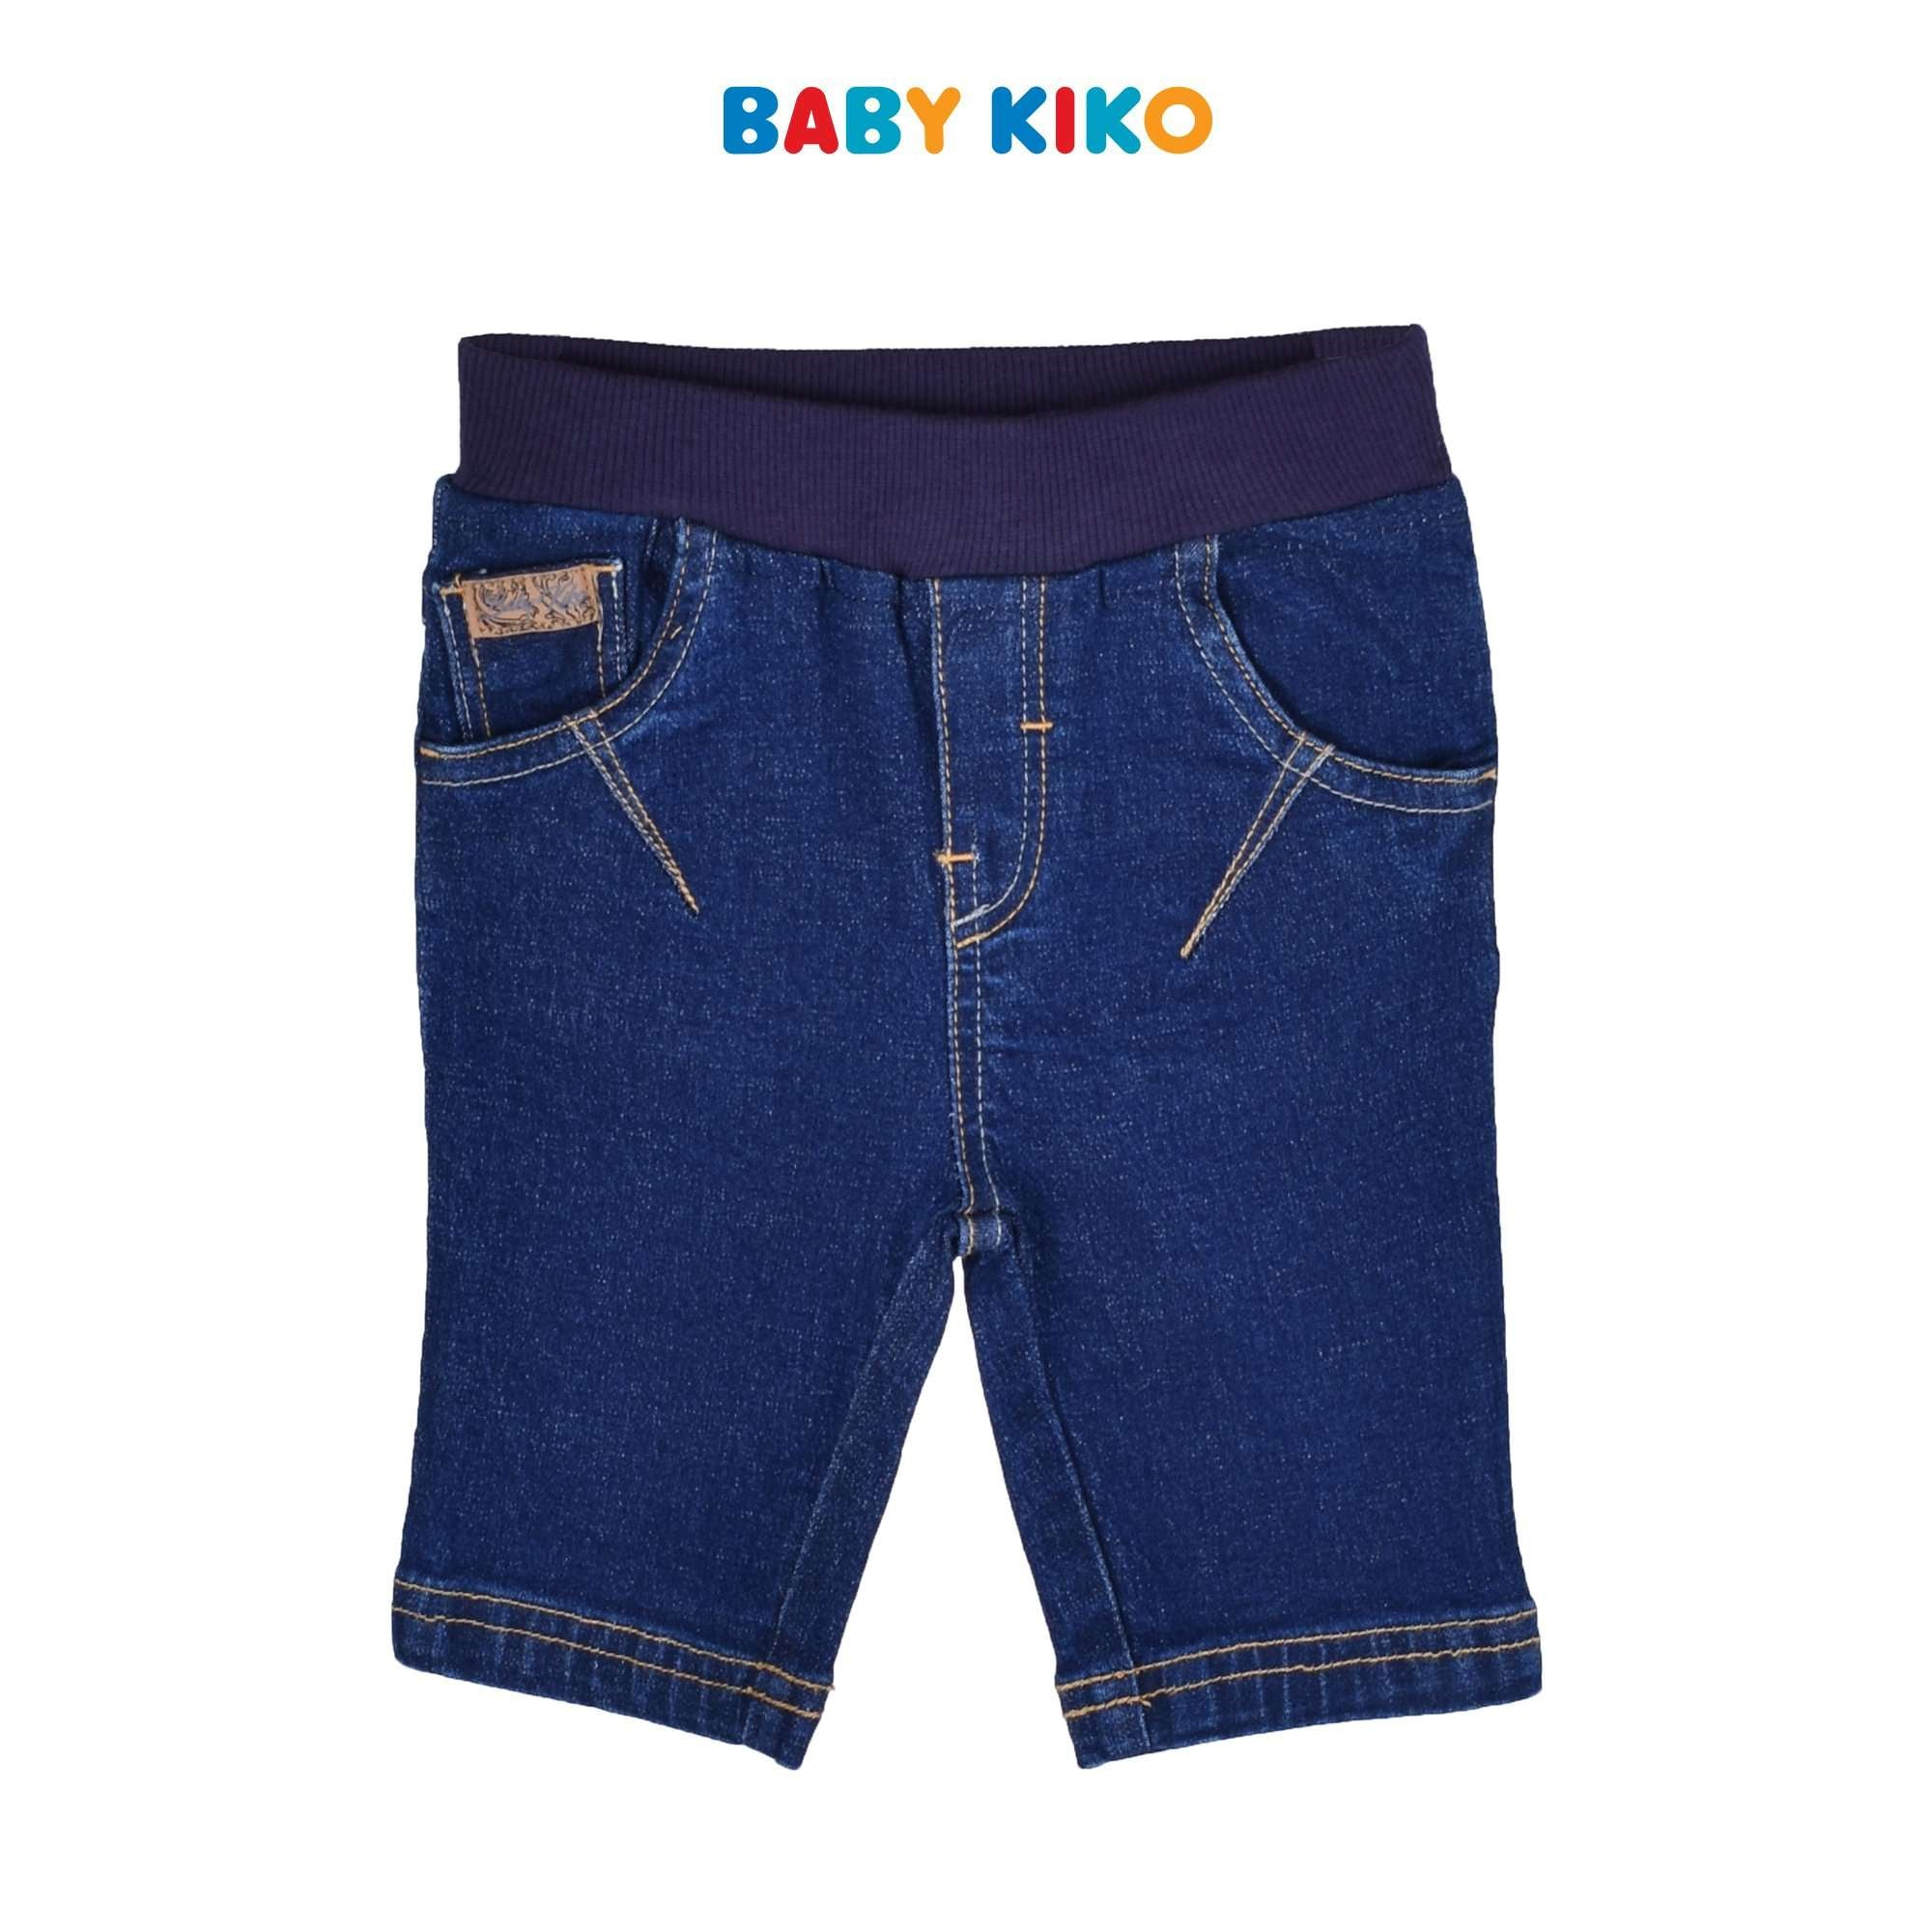 Baby KIKO Toddler Boy Bermuda 335117-202 : Buy Baby KIKO online at CMG.MY